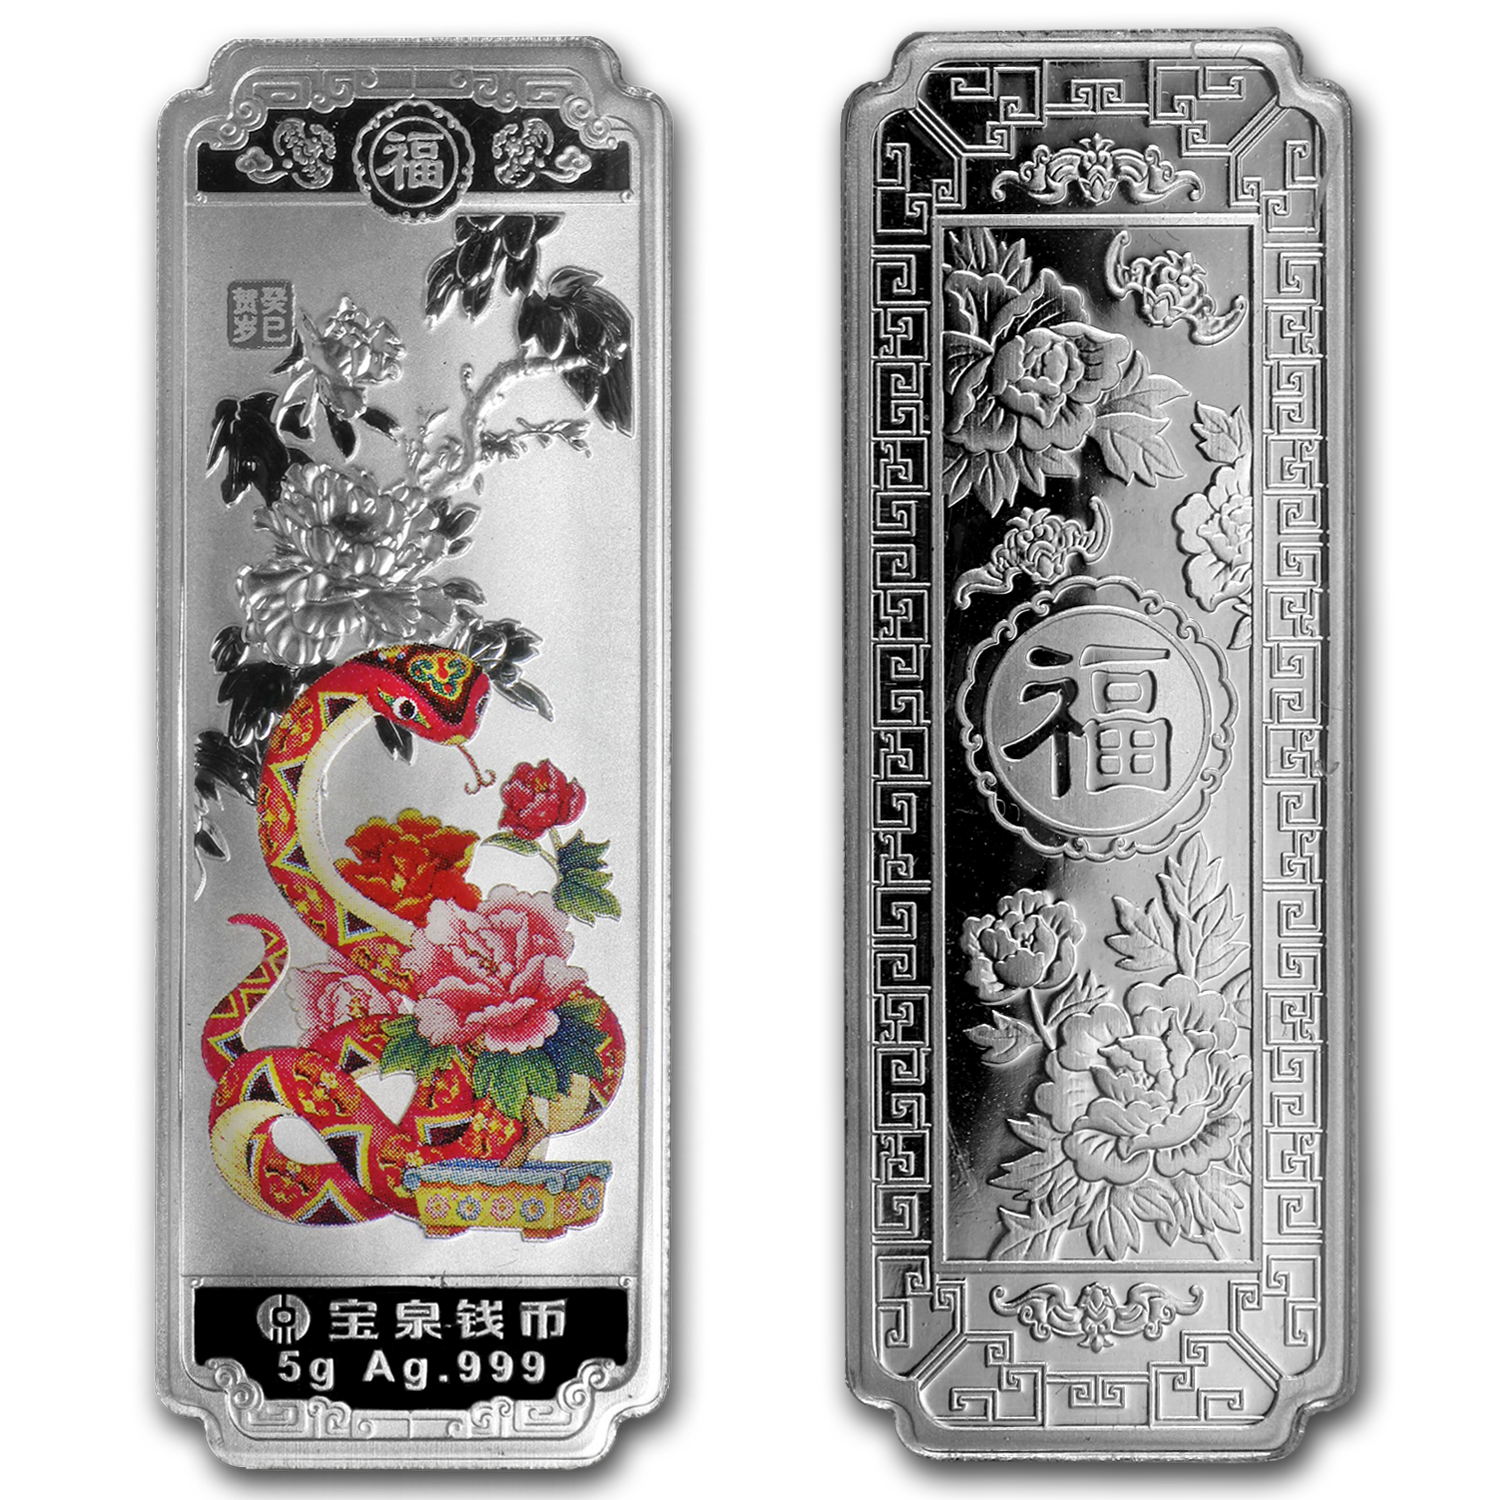 2013 China 5 gram Silver Year of the Snake Bar (Colorized)